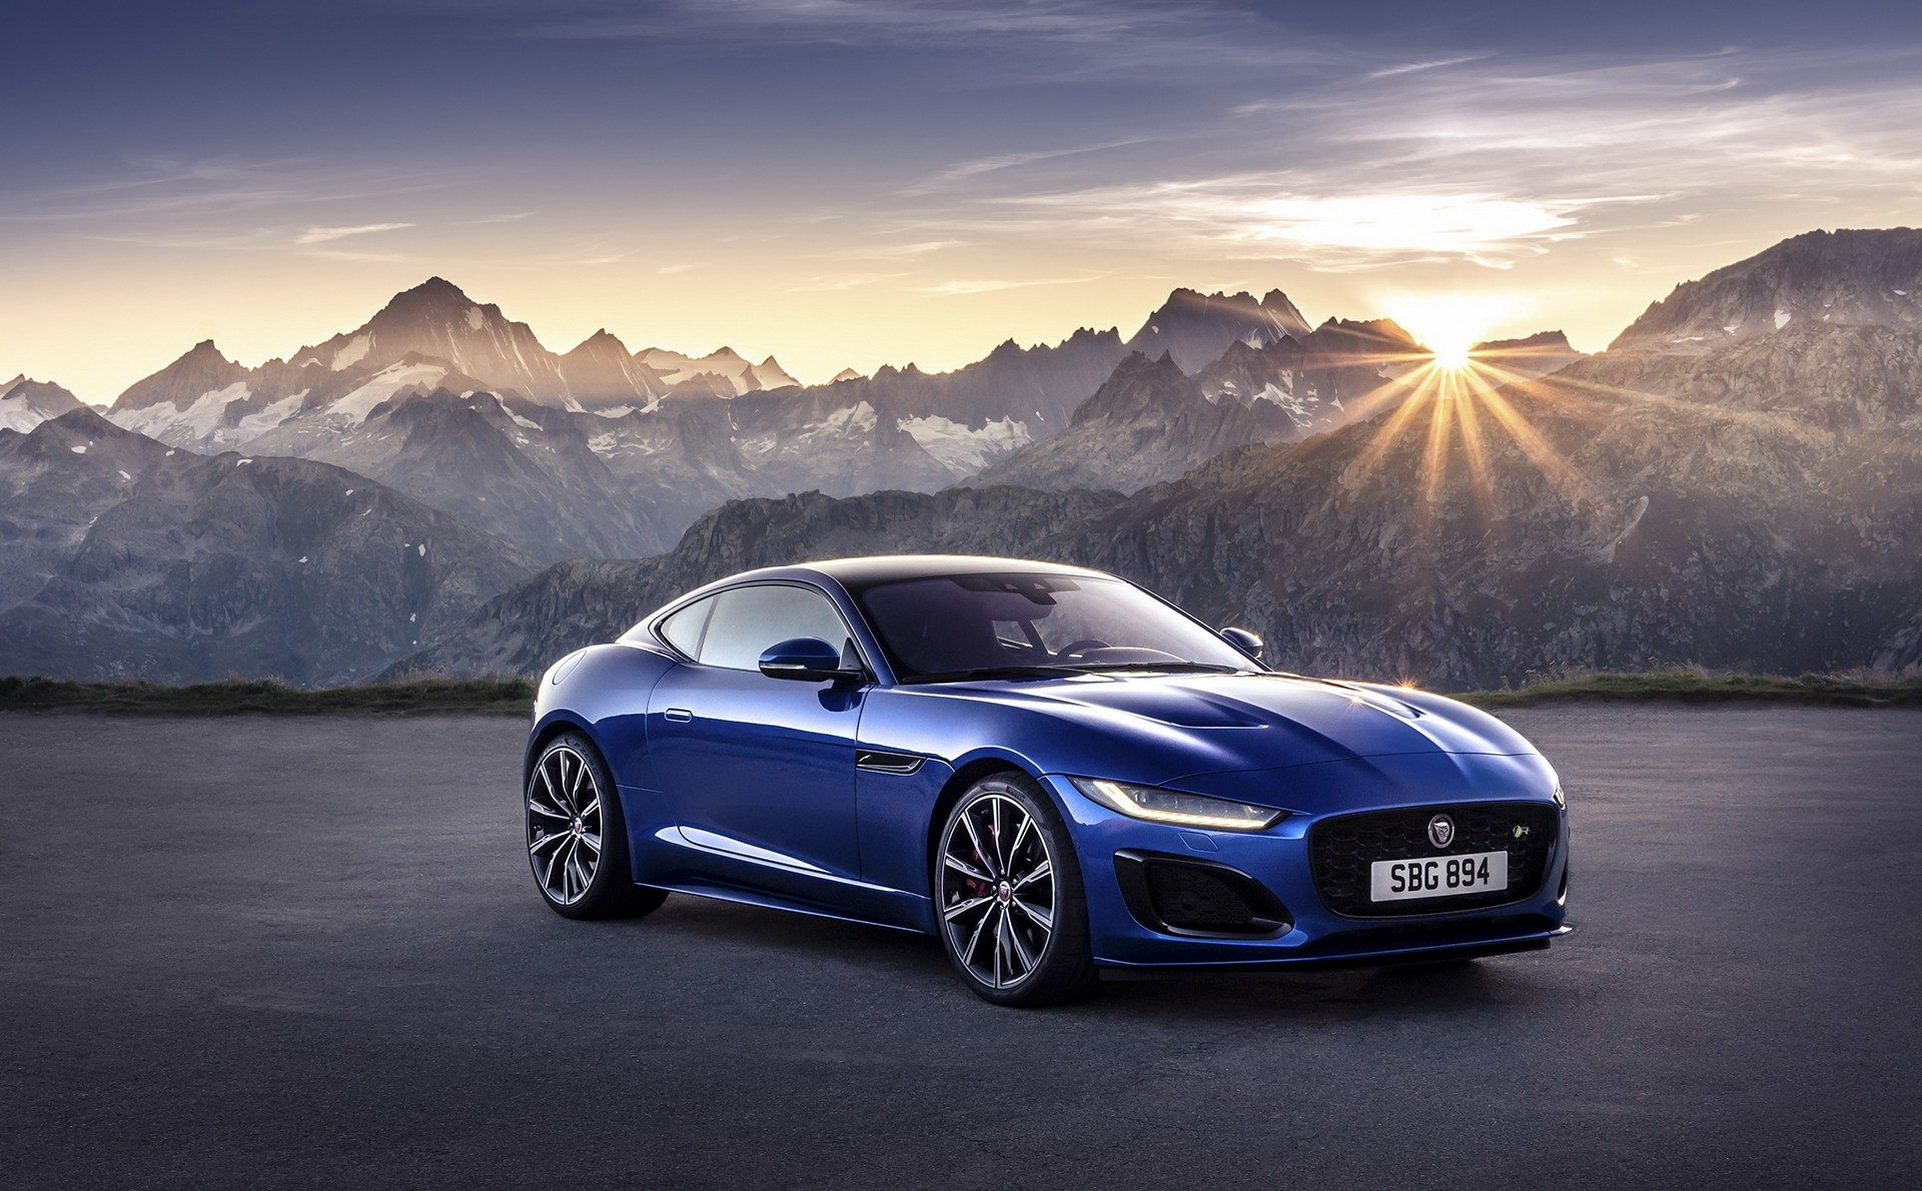 2021-Jaguar-F-Type-Facelift-7